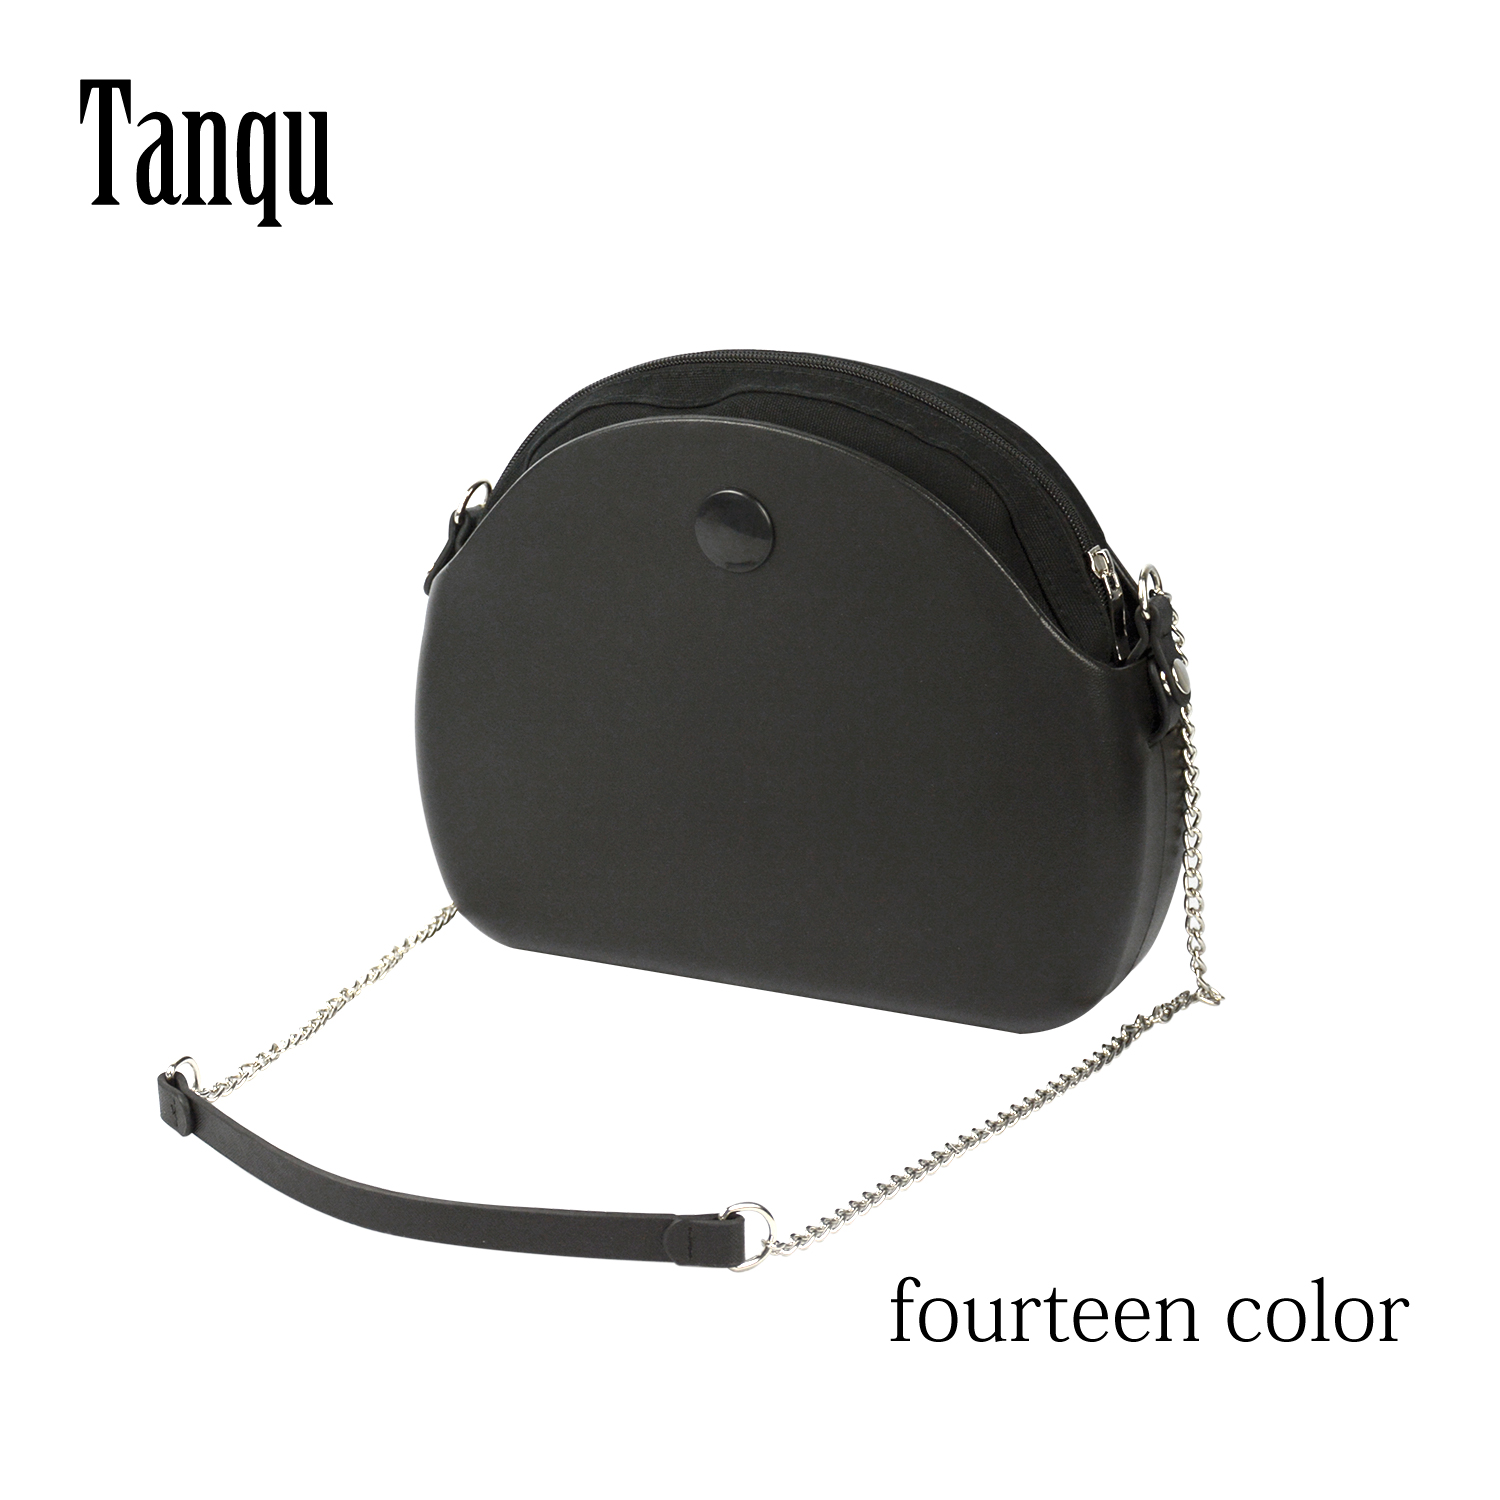 2019 Tanqu New O Bag Moon Light Body With Long Chain Waterproof  Inner Pocket Bag Rubber Silicon O Moon Light Obag Women Handbag